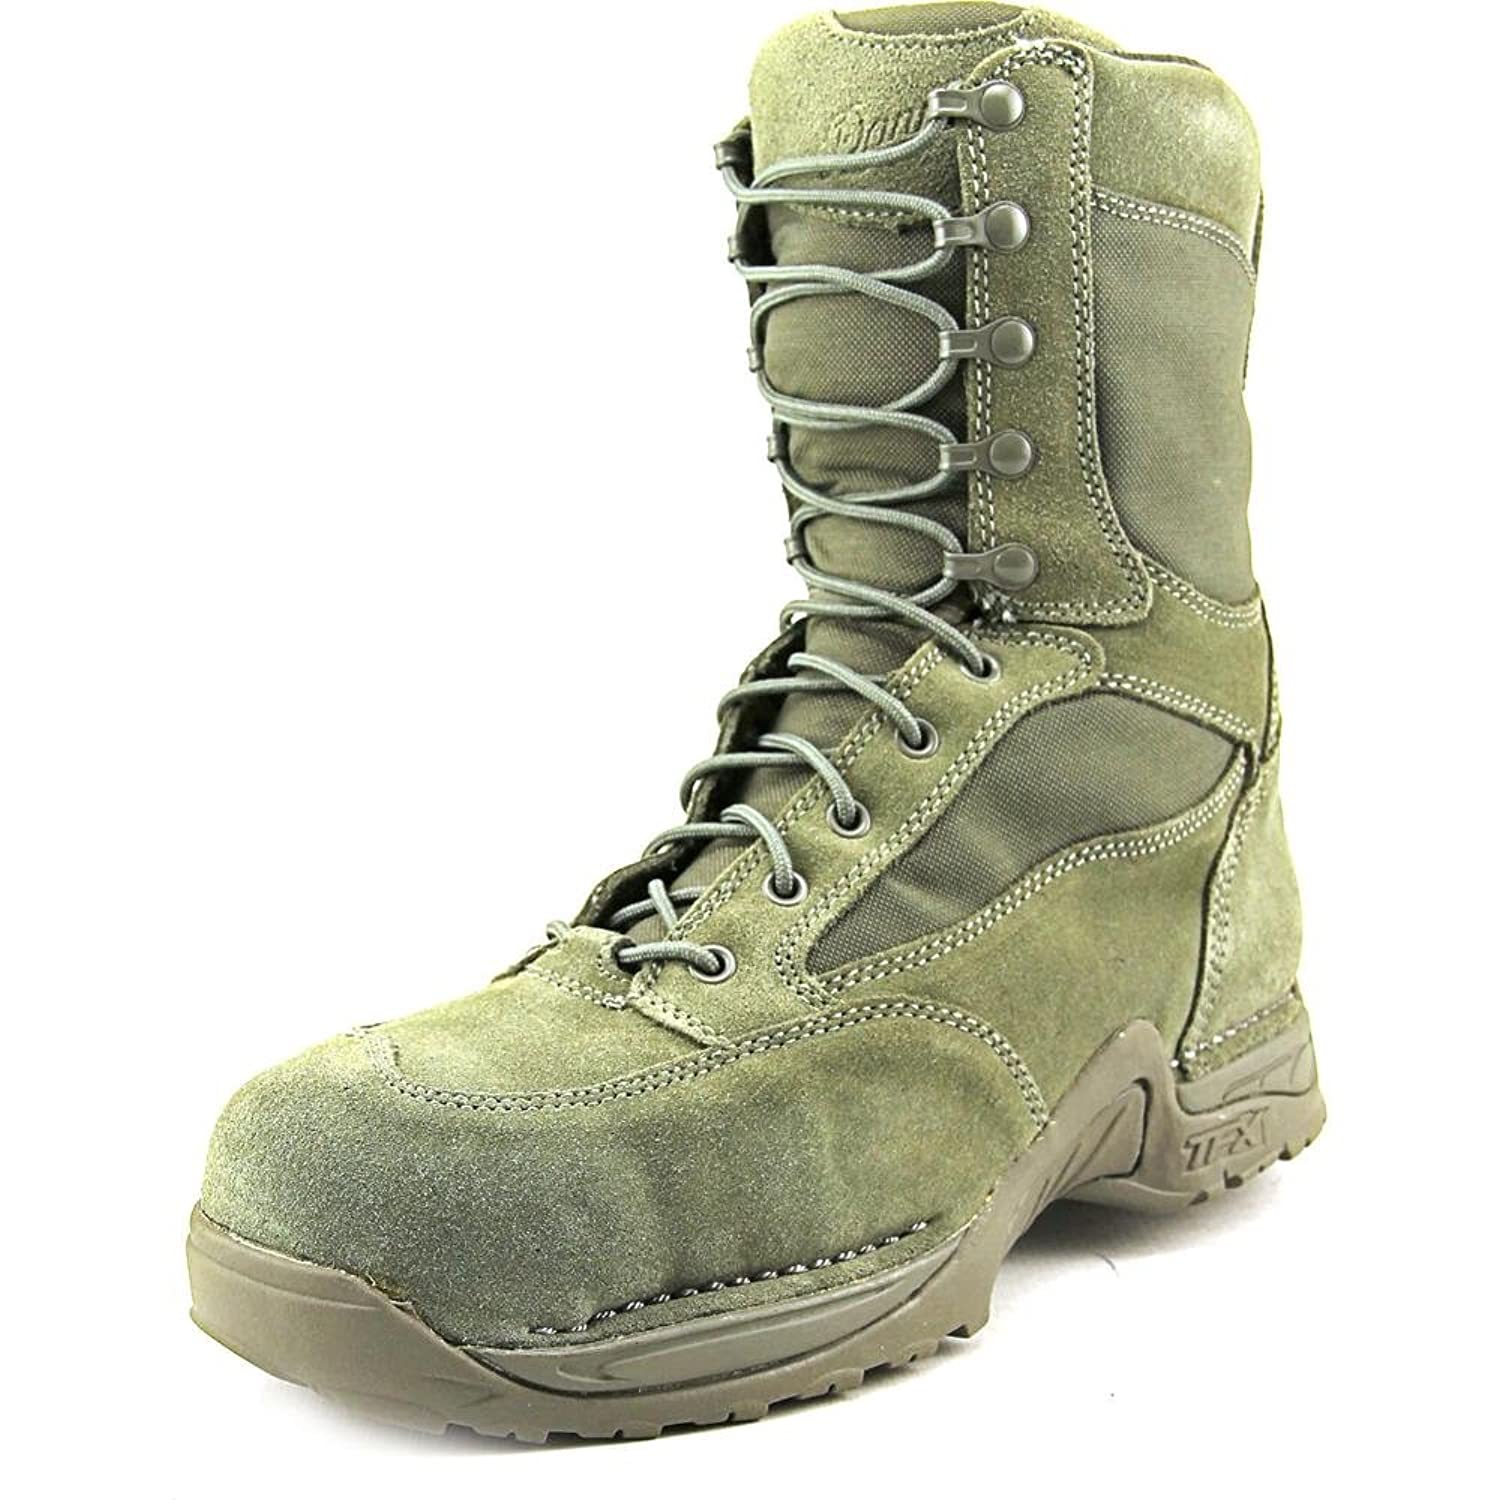 Danner Safety Toe Military Boots Coltford Boots